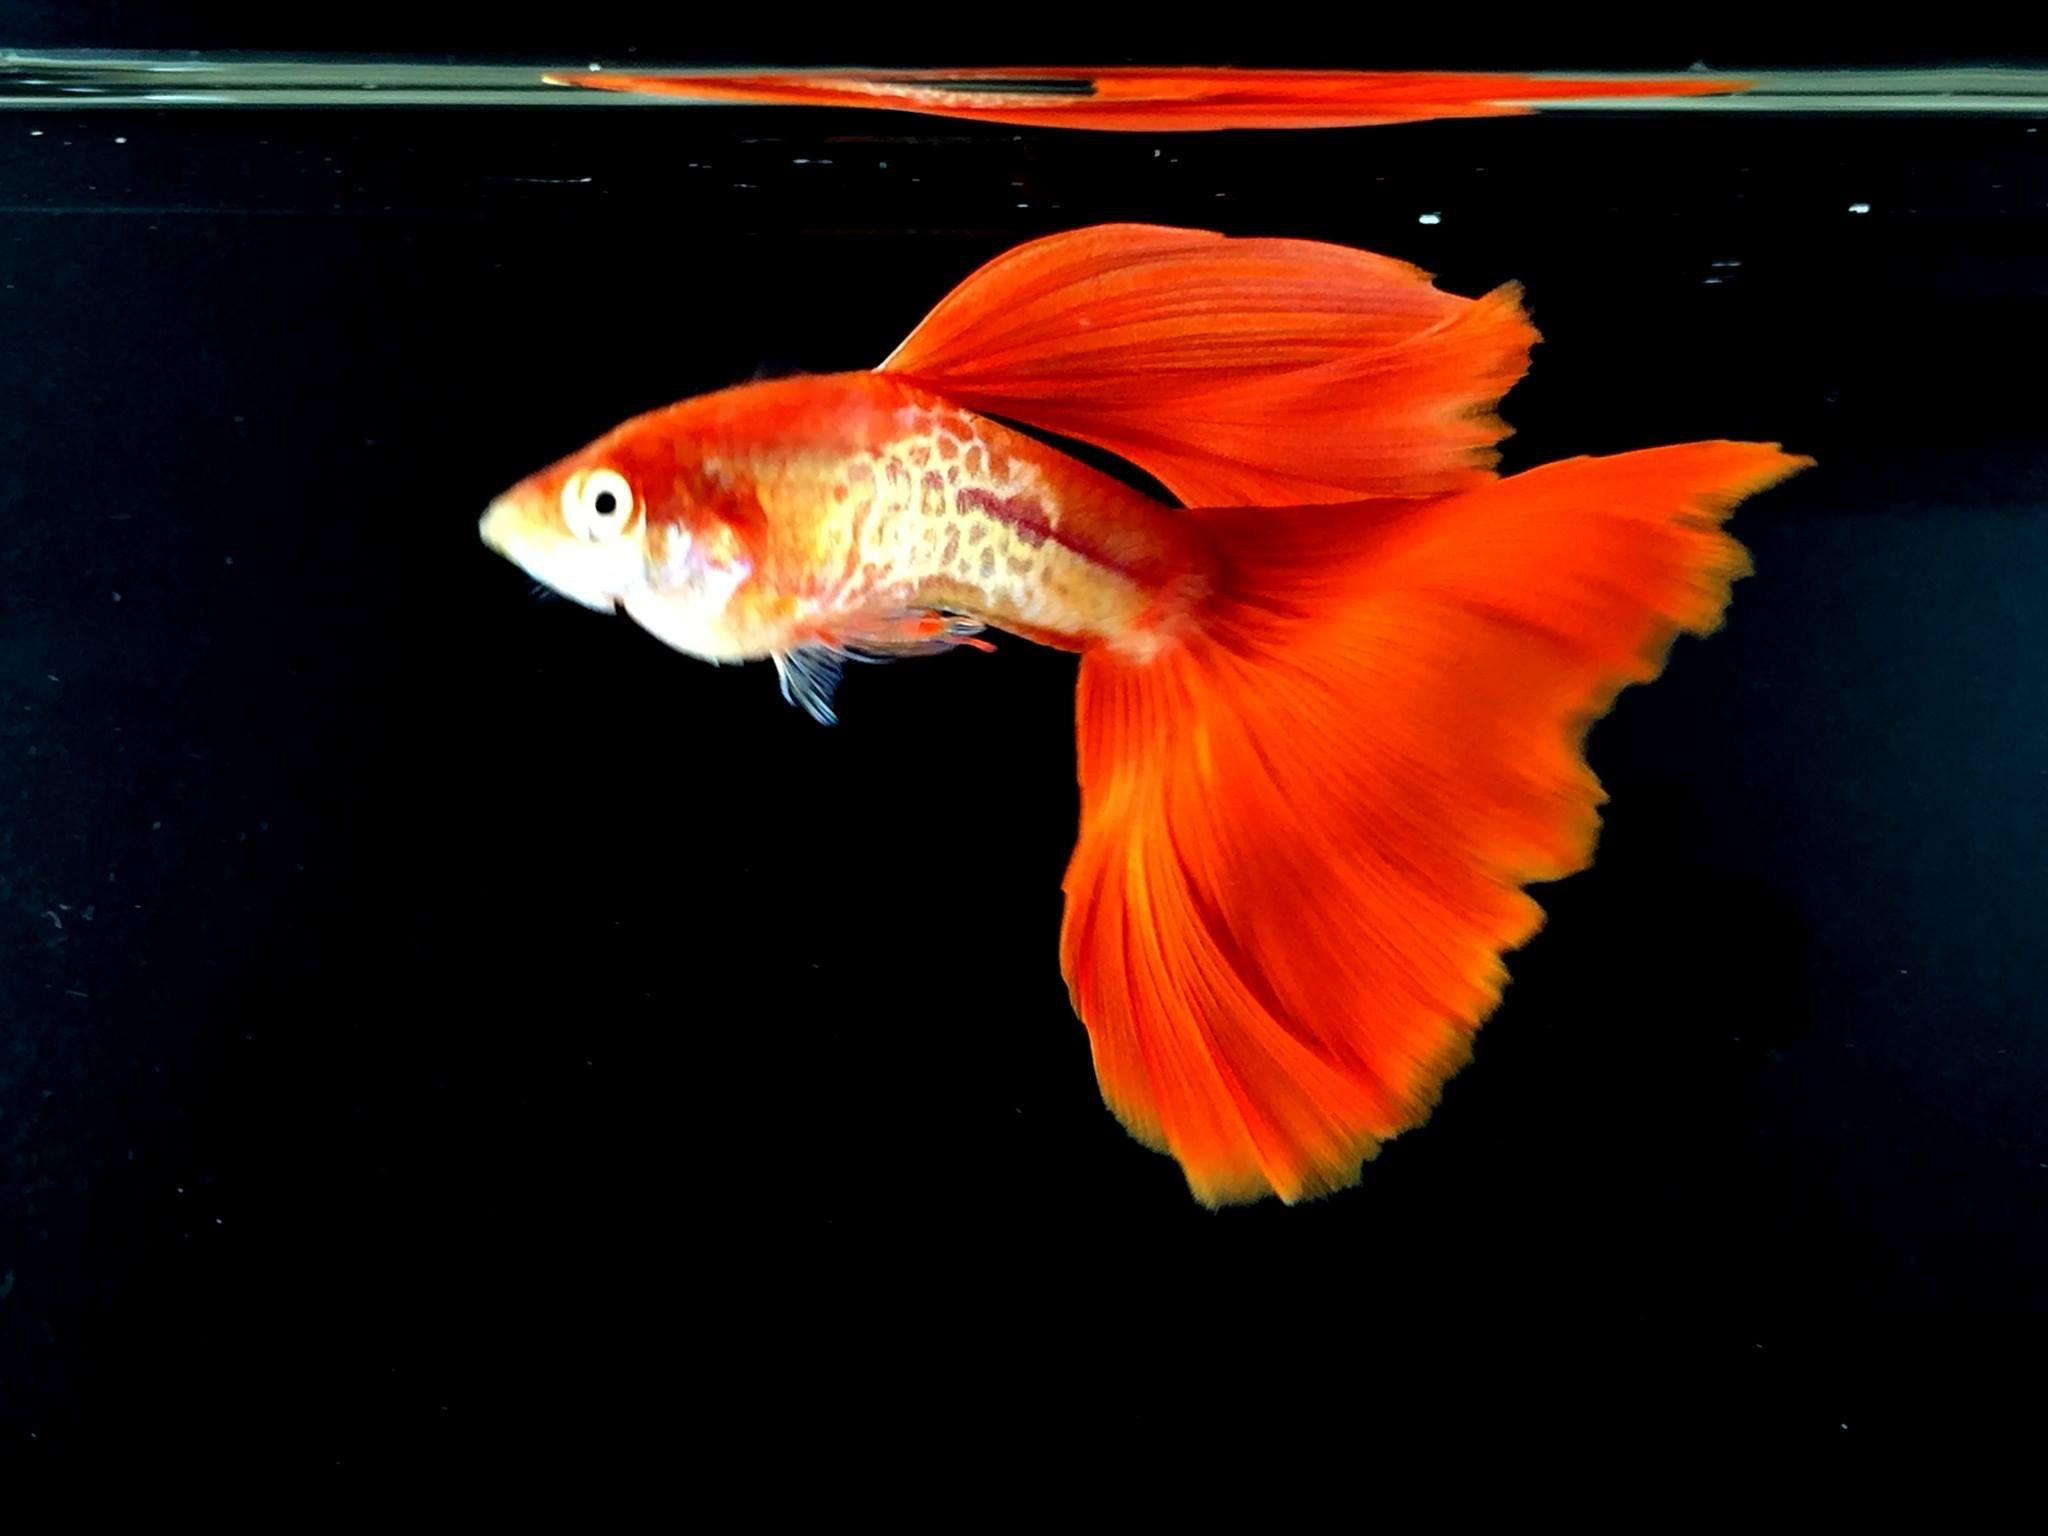 Pin by Taher Afquir on fish | Pinterest | Guppy